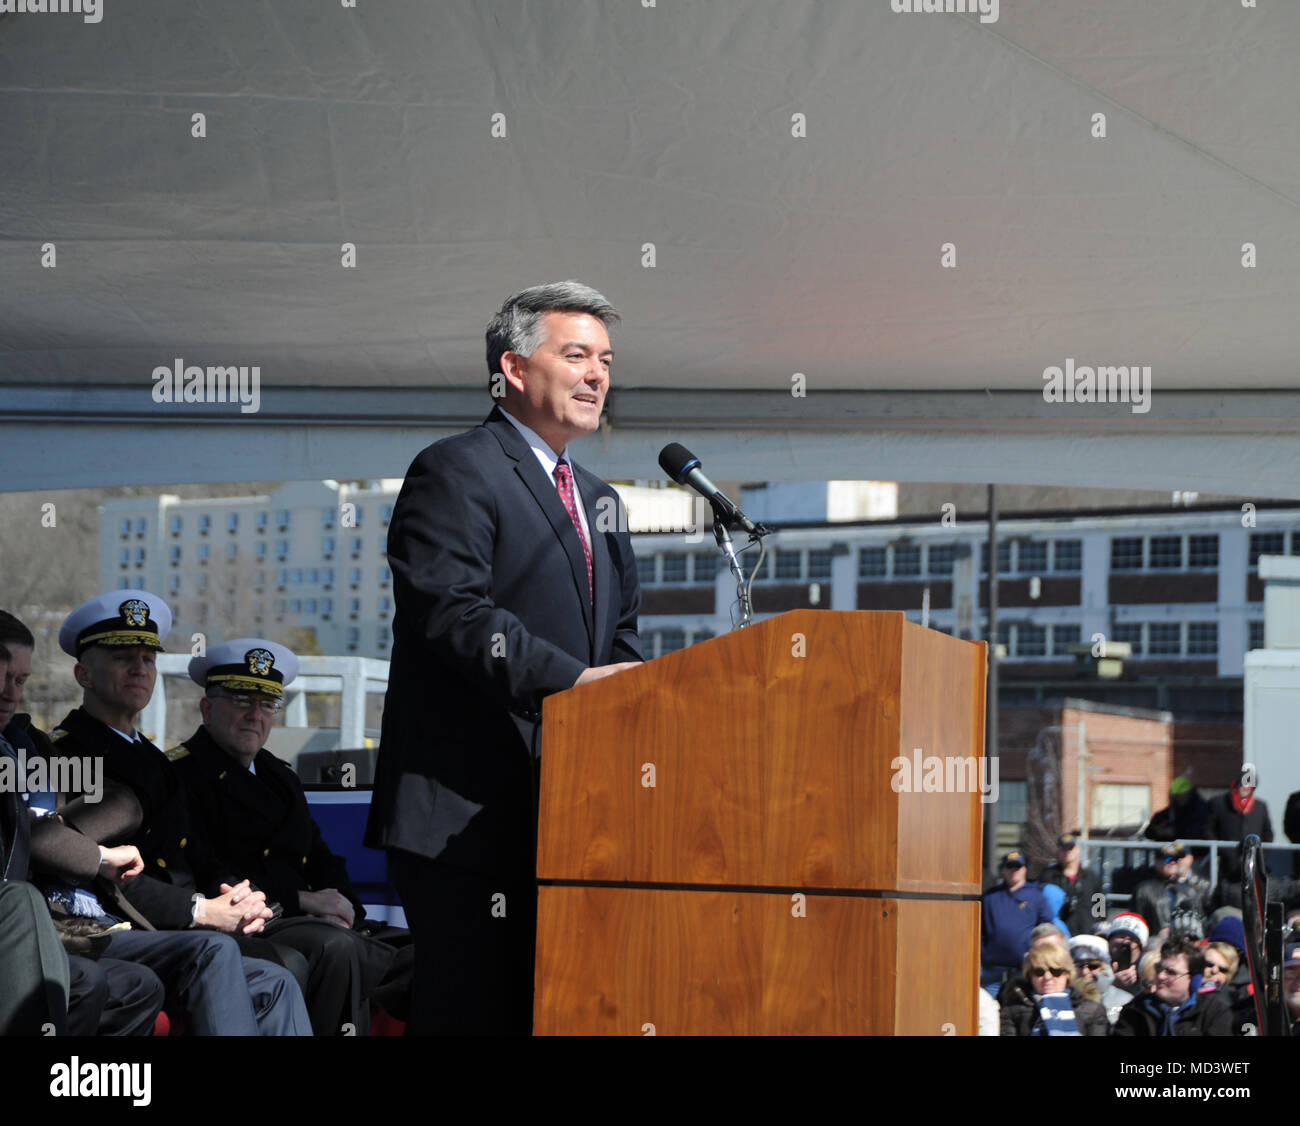 GROTON, Conn. (Mar. 17, 2018) The Honorable Cory S. Gardner, United States Senator, offers remarks at the commissioning ceremony for USS Colorado (SSN 788) on March 17, 2018. Colorado is the the U.S. Navy's 15th Virginia-class attack submarine and the fourth US Navy ship named for the State of Colorado.  (U.S. Navy photo by Chief Petty Officer Darryl I. Wood/Released) Stock Photo